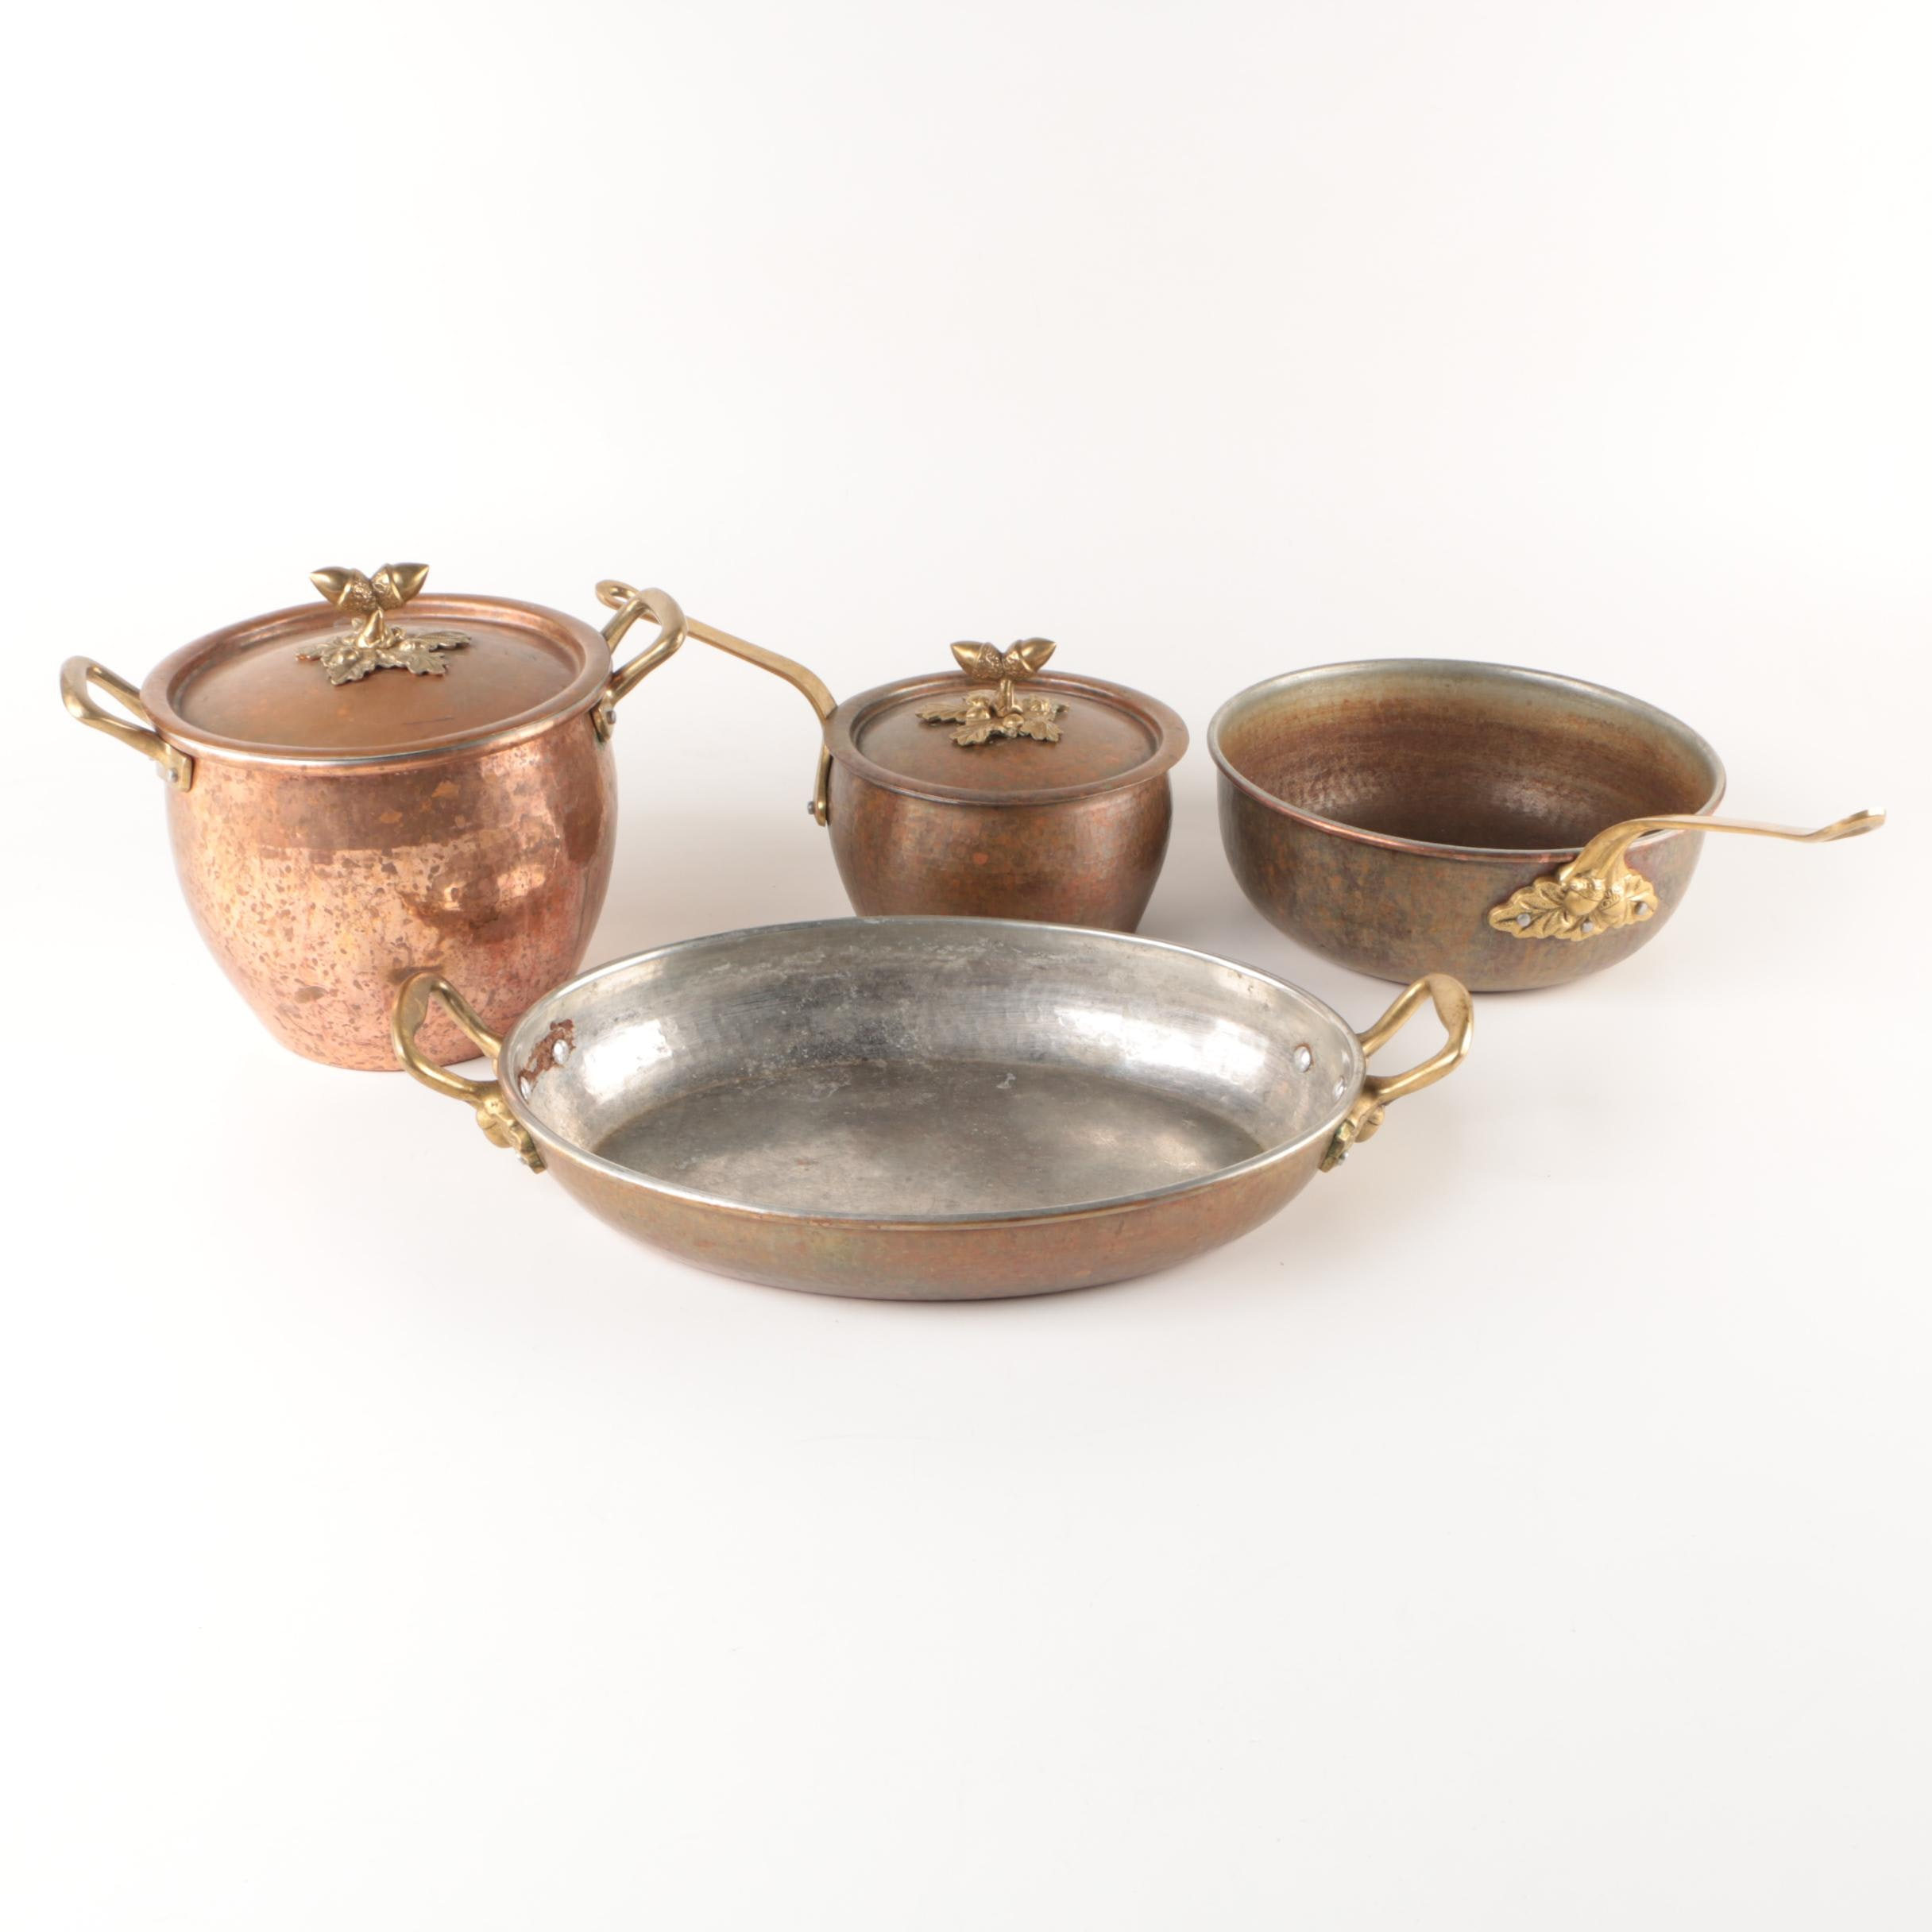 Vintage Copper Cookware Featuring Ruffoni Italy